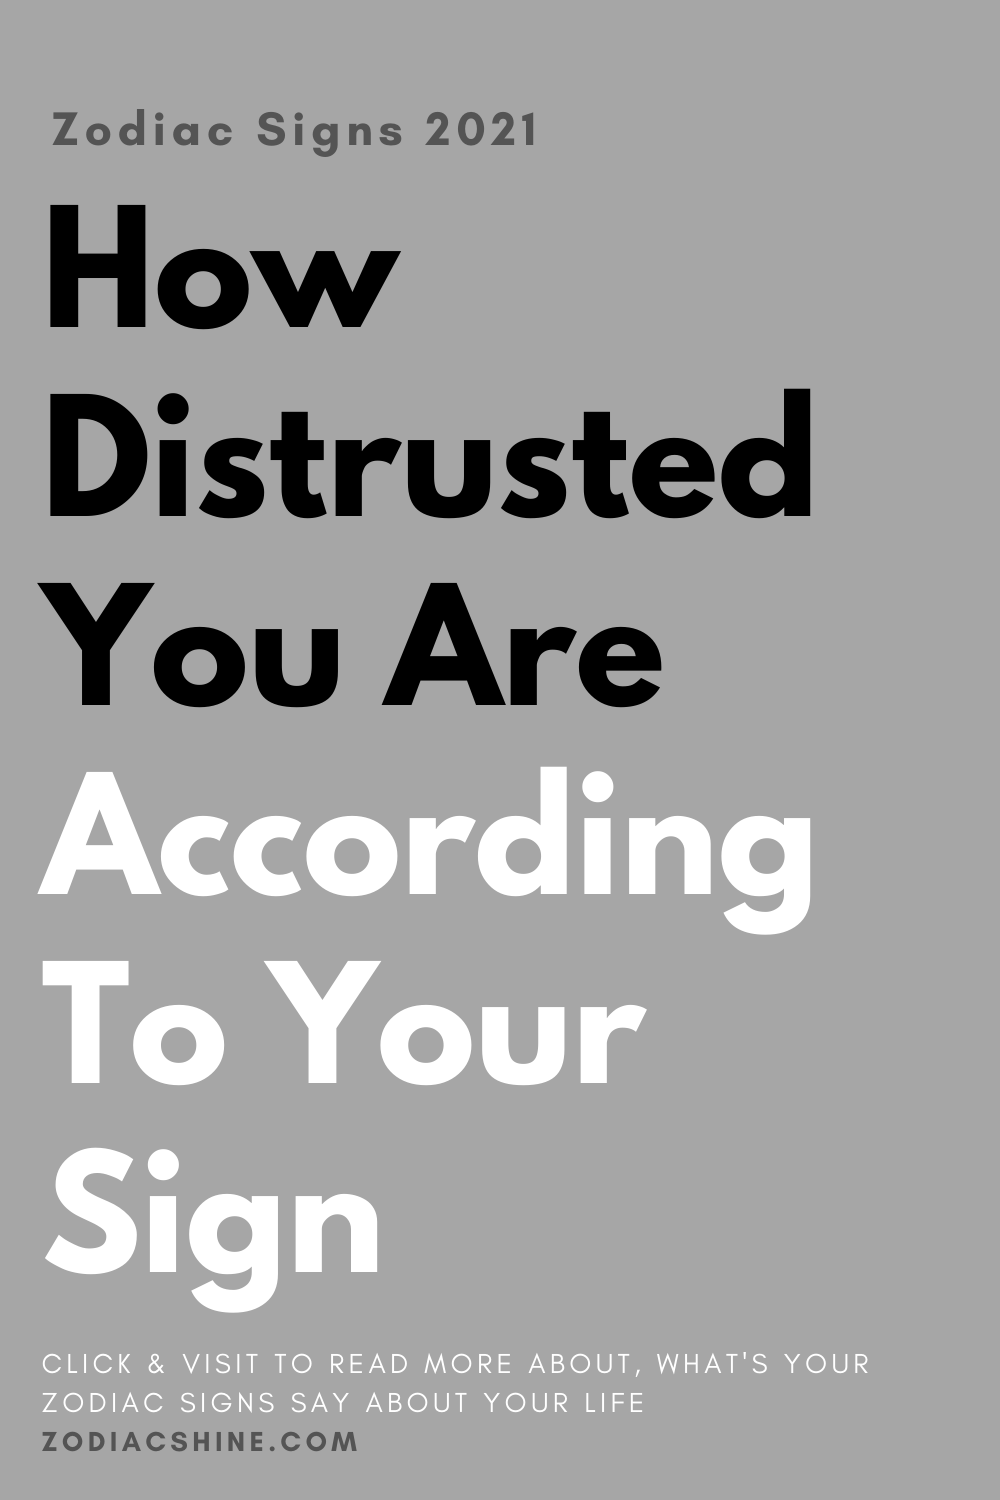 How Distrusted You Are According To Your Sign